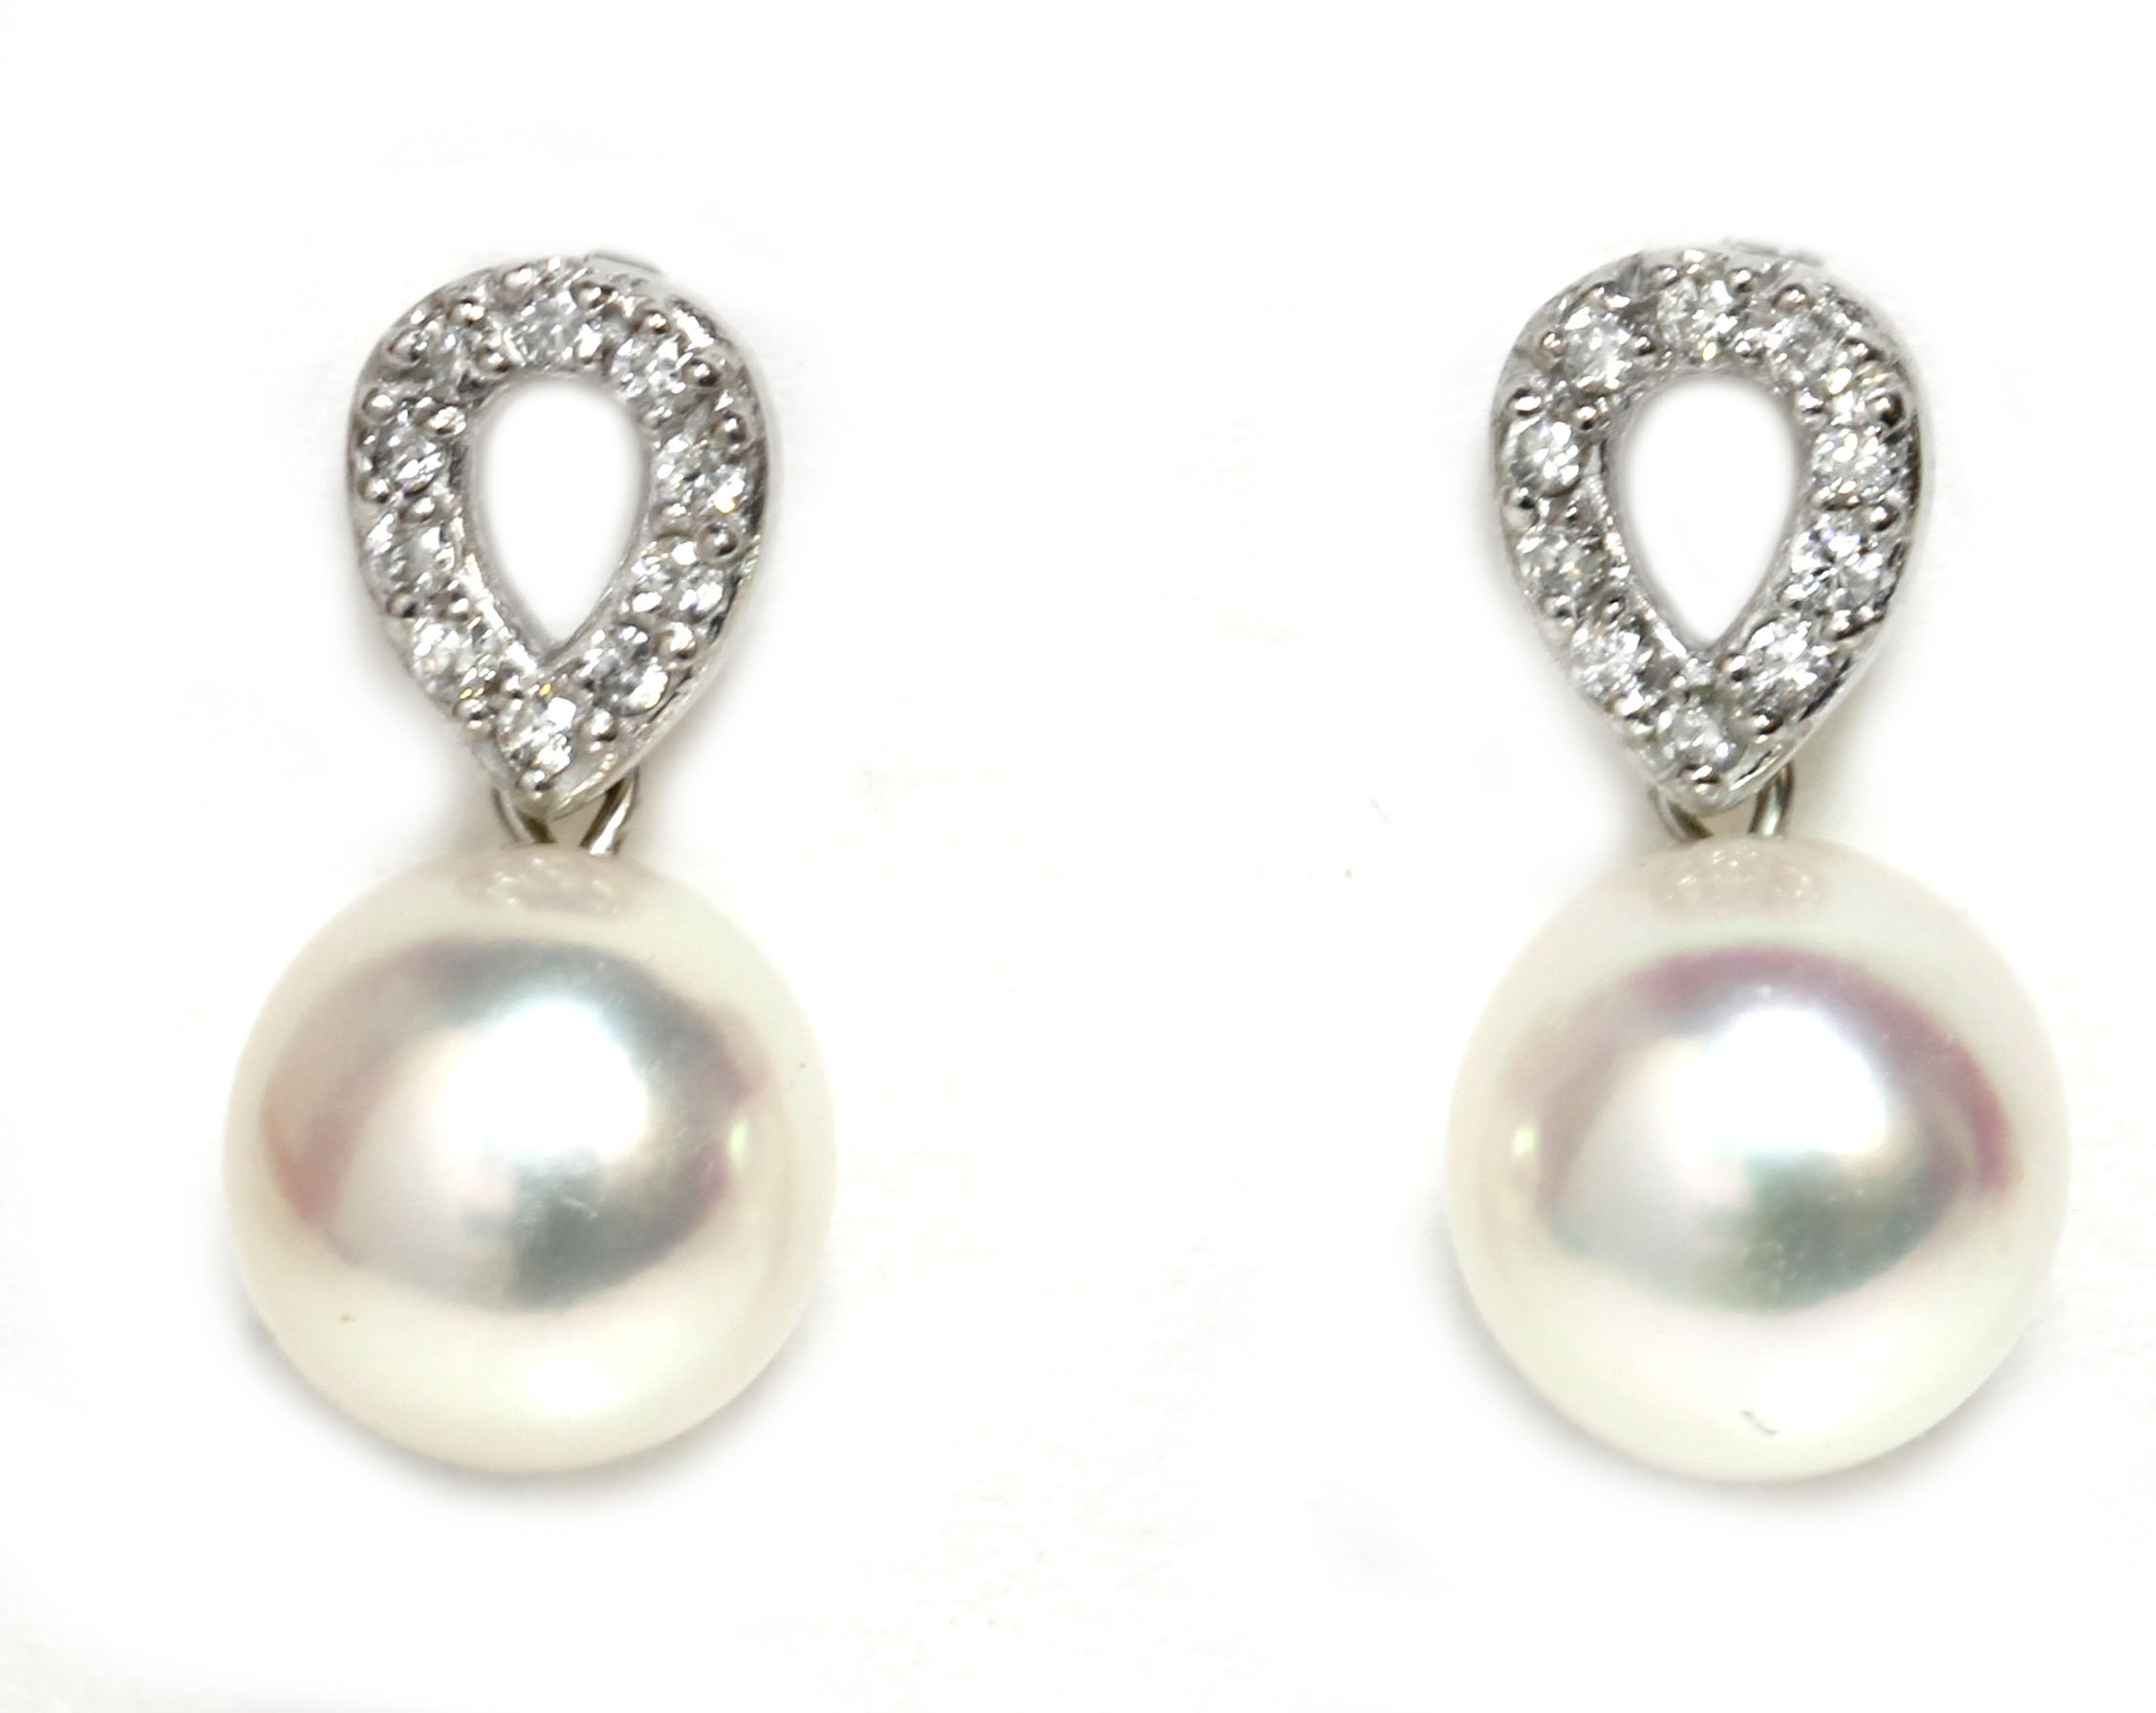 Akoya Pearl Diamond Unify Earrings 8.5 - 8 MM 14k White or Yellow Gold Top Quality (White Gold-AAA Surface)